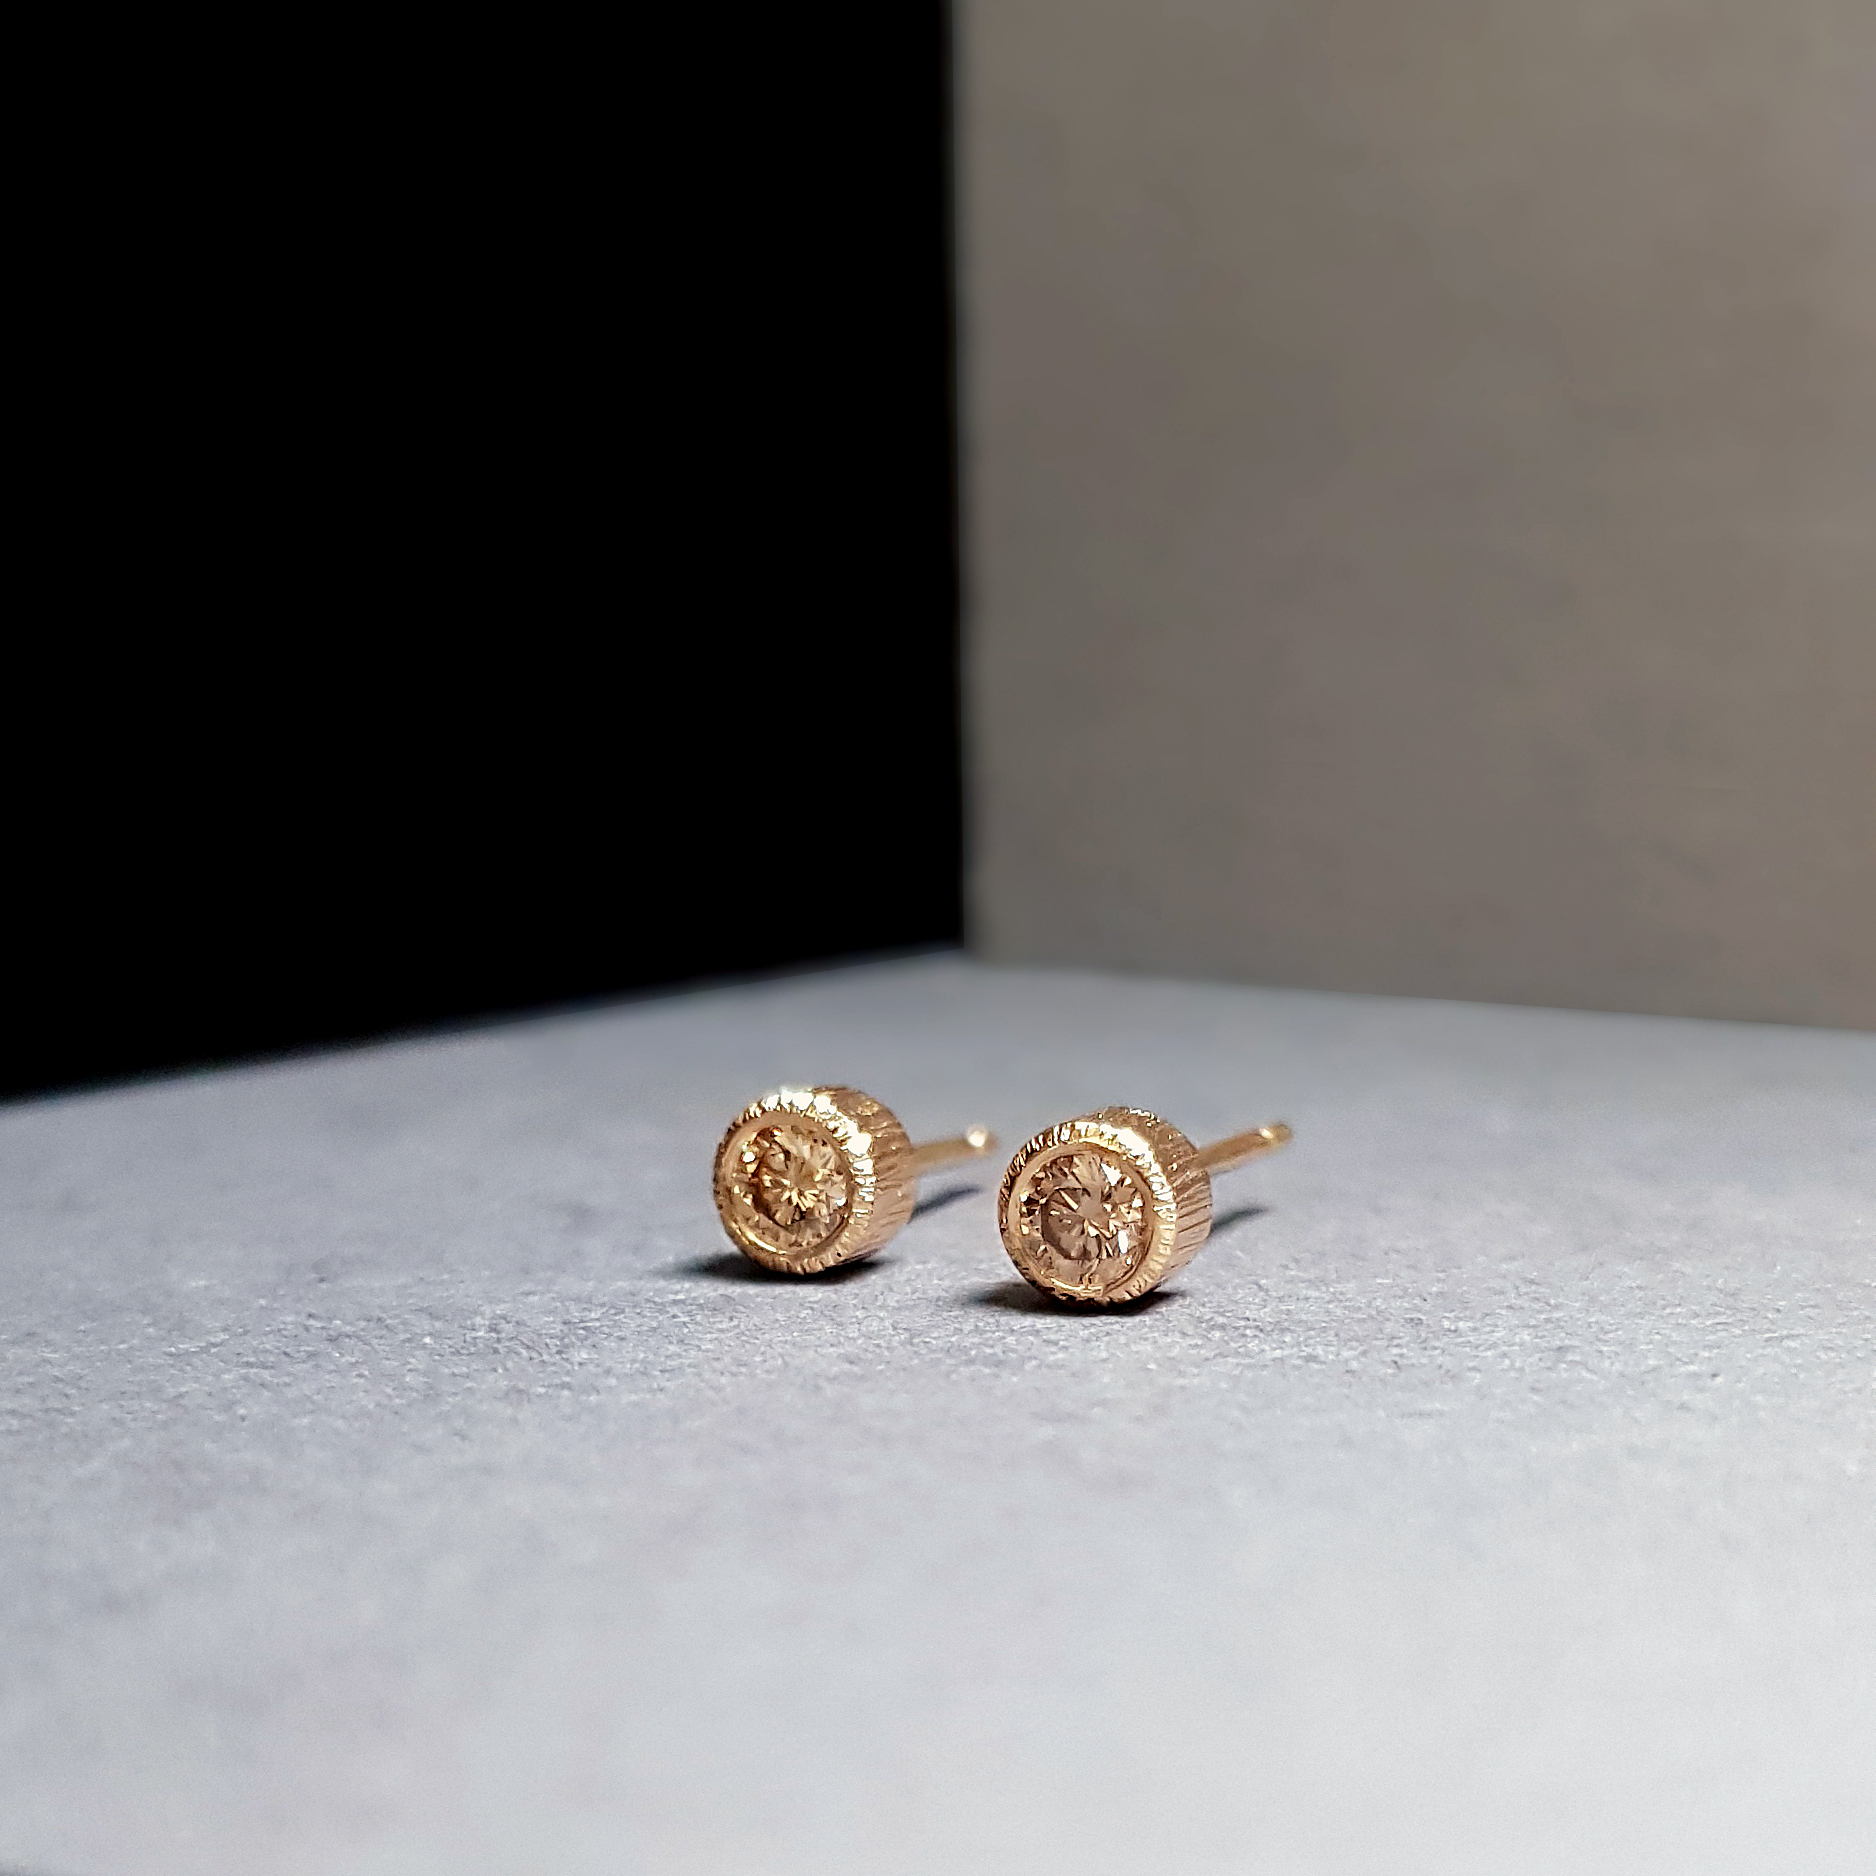 Champagne diamond earrings in 18k rose gold set against a colour block background of black and grey.